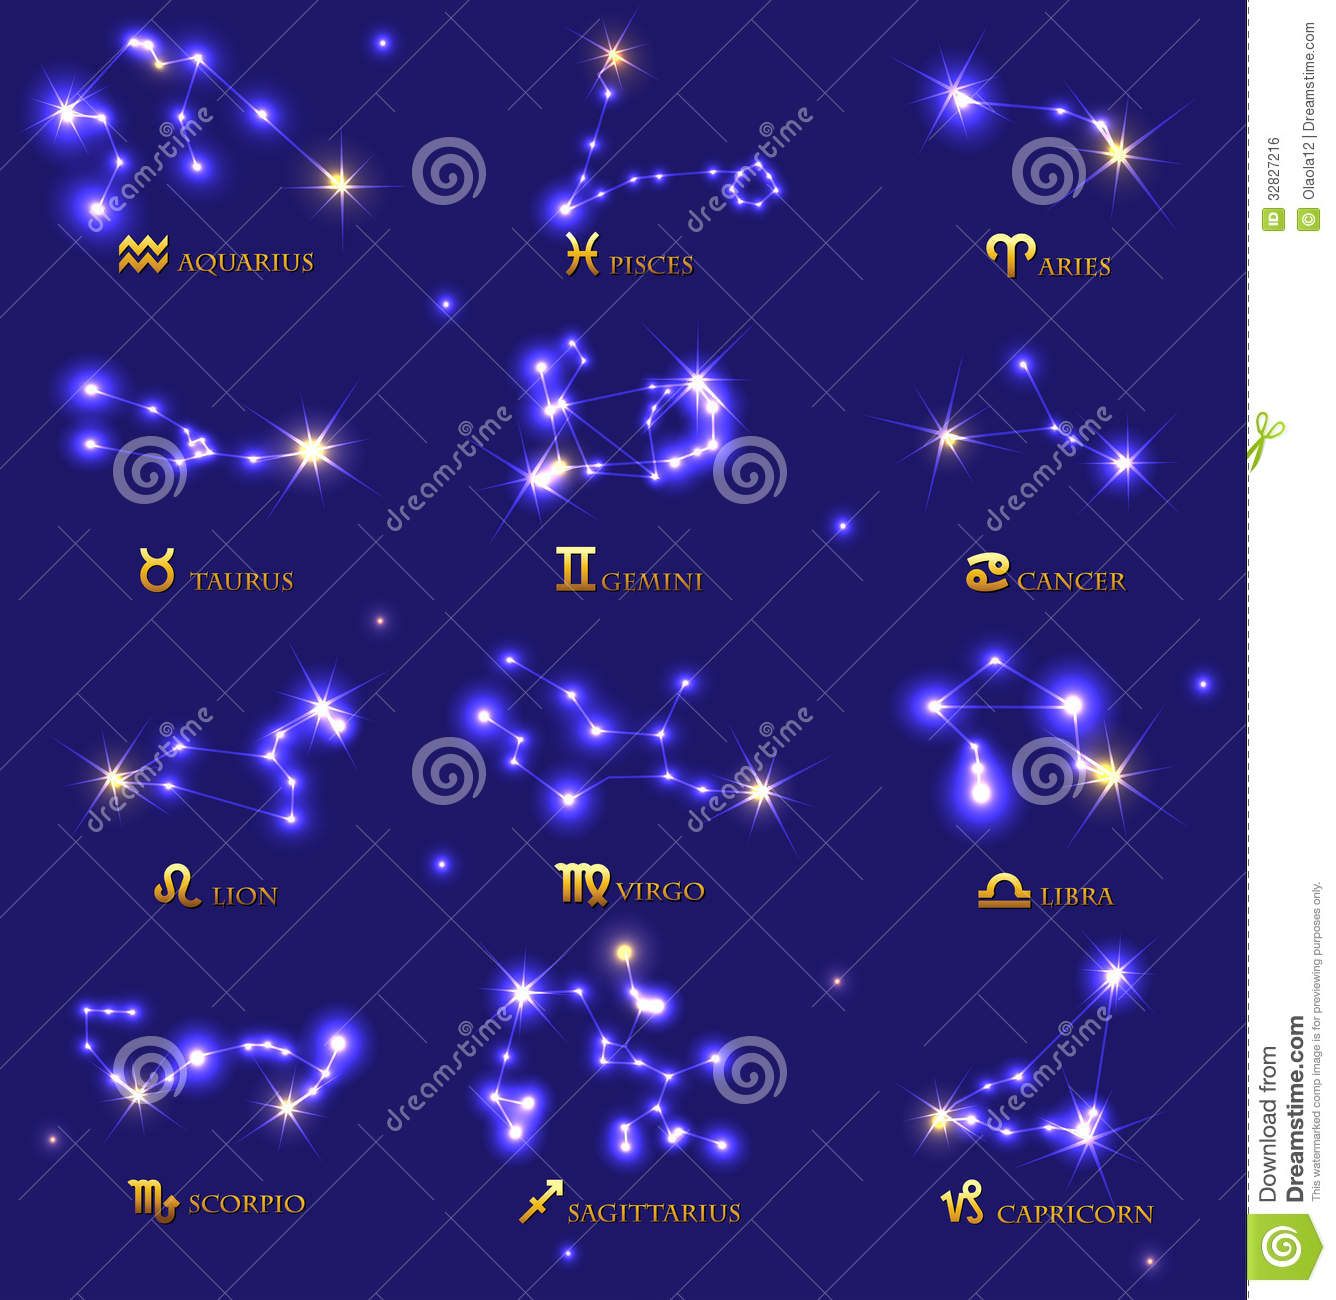 All Constellations Of The Zodiac Zodiac signs Royalty Free